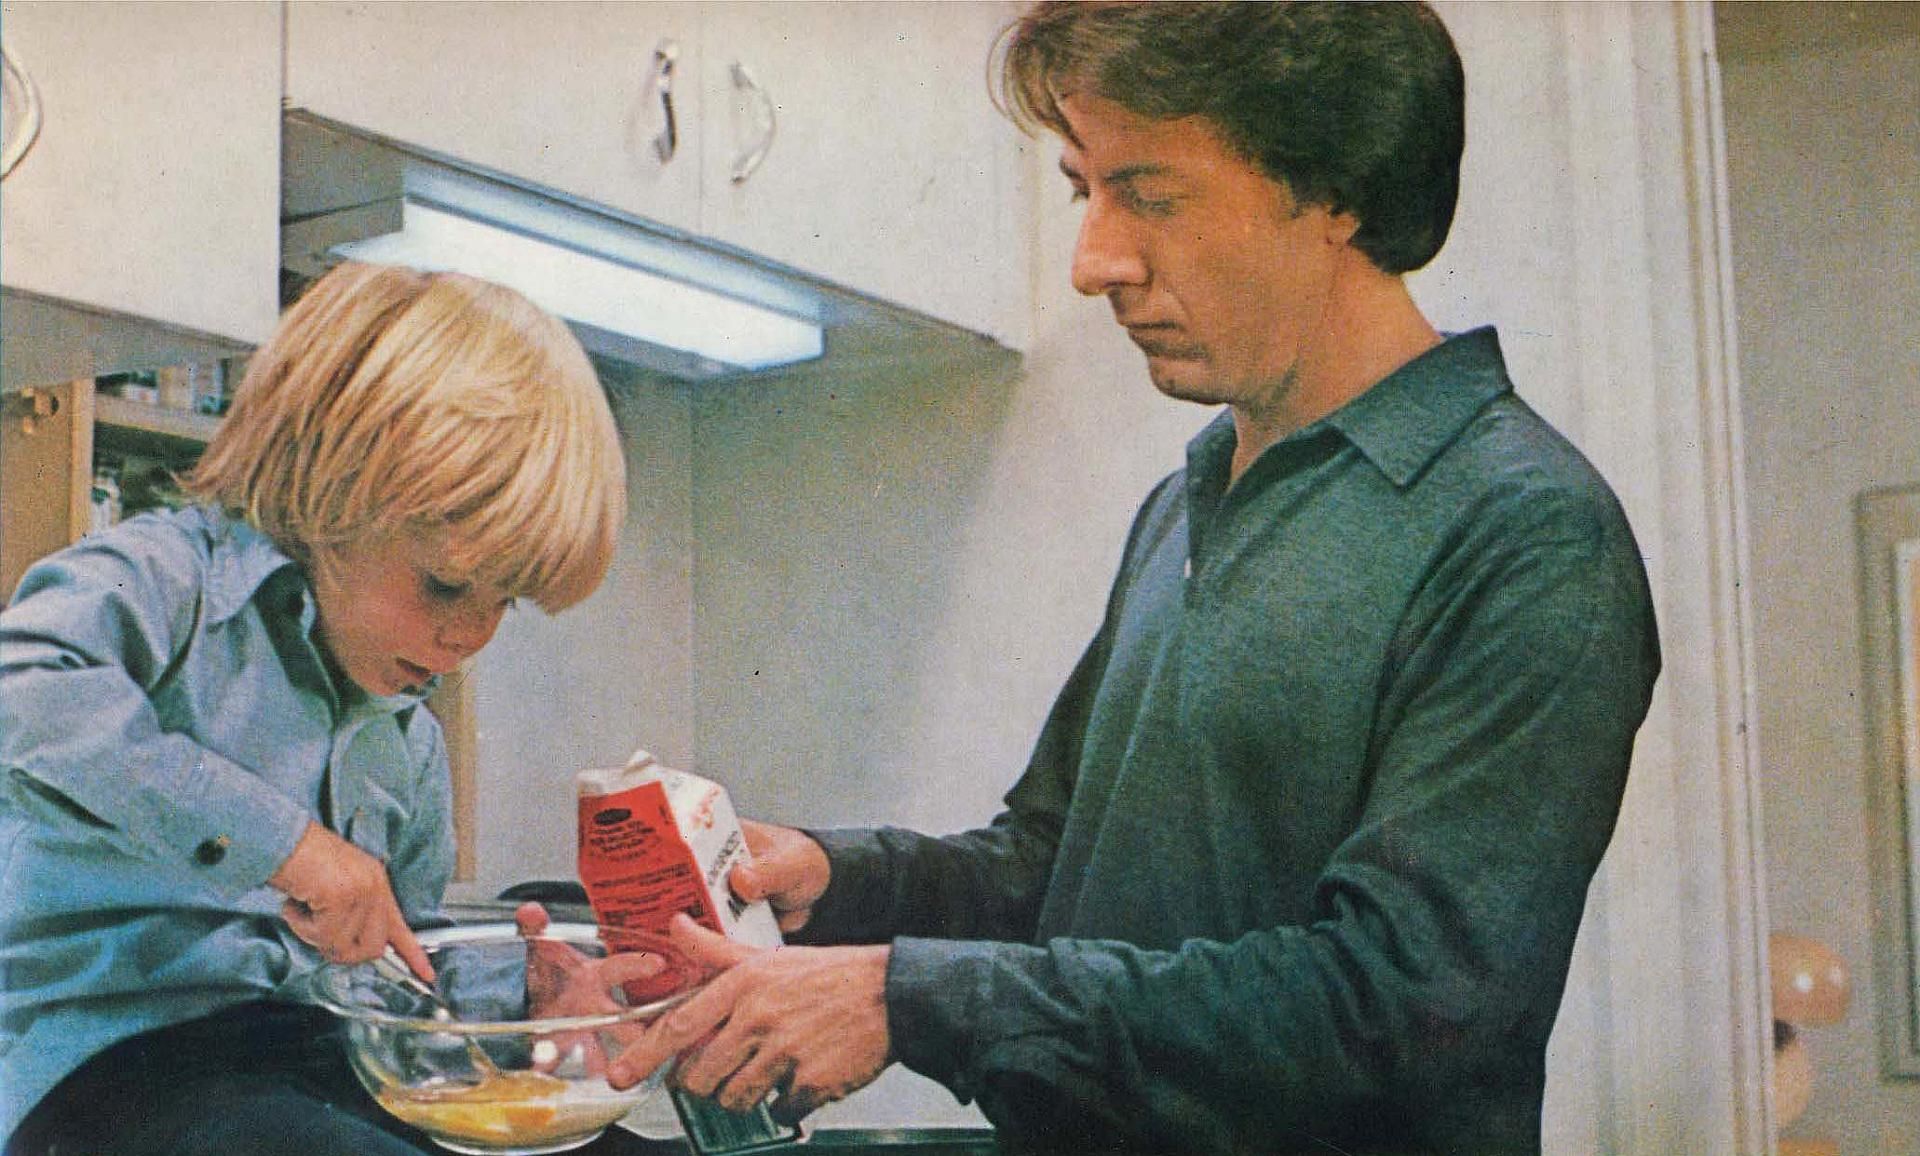 kramer versus kramer Kramer vs kramer was a revolutionary film at the time of its release because it wasn't afraid to take the position that men can be great caretakers in the same way women were traditionally.